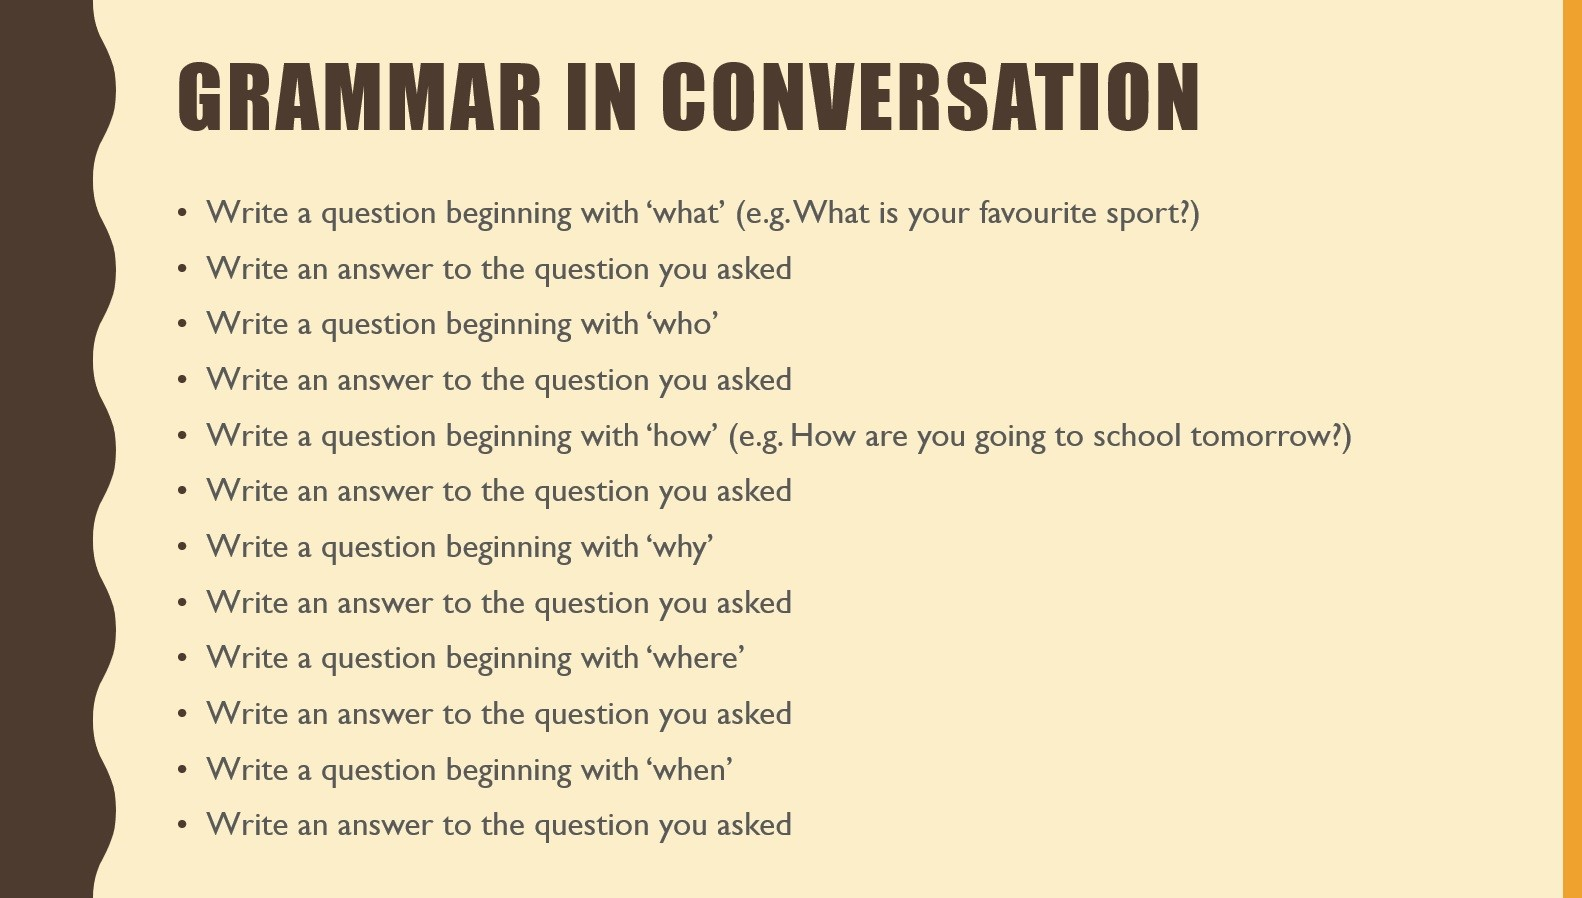 A screenshot of a powerpoint presentation Text: Grammar in Conversation Write a question beginning with 'what' (e.g. What is your favourite sport?) Write an answer to the question you asked Write a question beginning with 'who' Write an answer to the question you asked Write a question beginning with 'how' (e.g. How are you going to school tomorrow?) Write an answer to the question you asked Write a question beginning with 'why' Write an answer to the question you asked Write a question beginning with 'where' Write an answer to the question you asked Write a question beginning with 'when' Write an answer to the question you asked